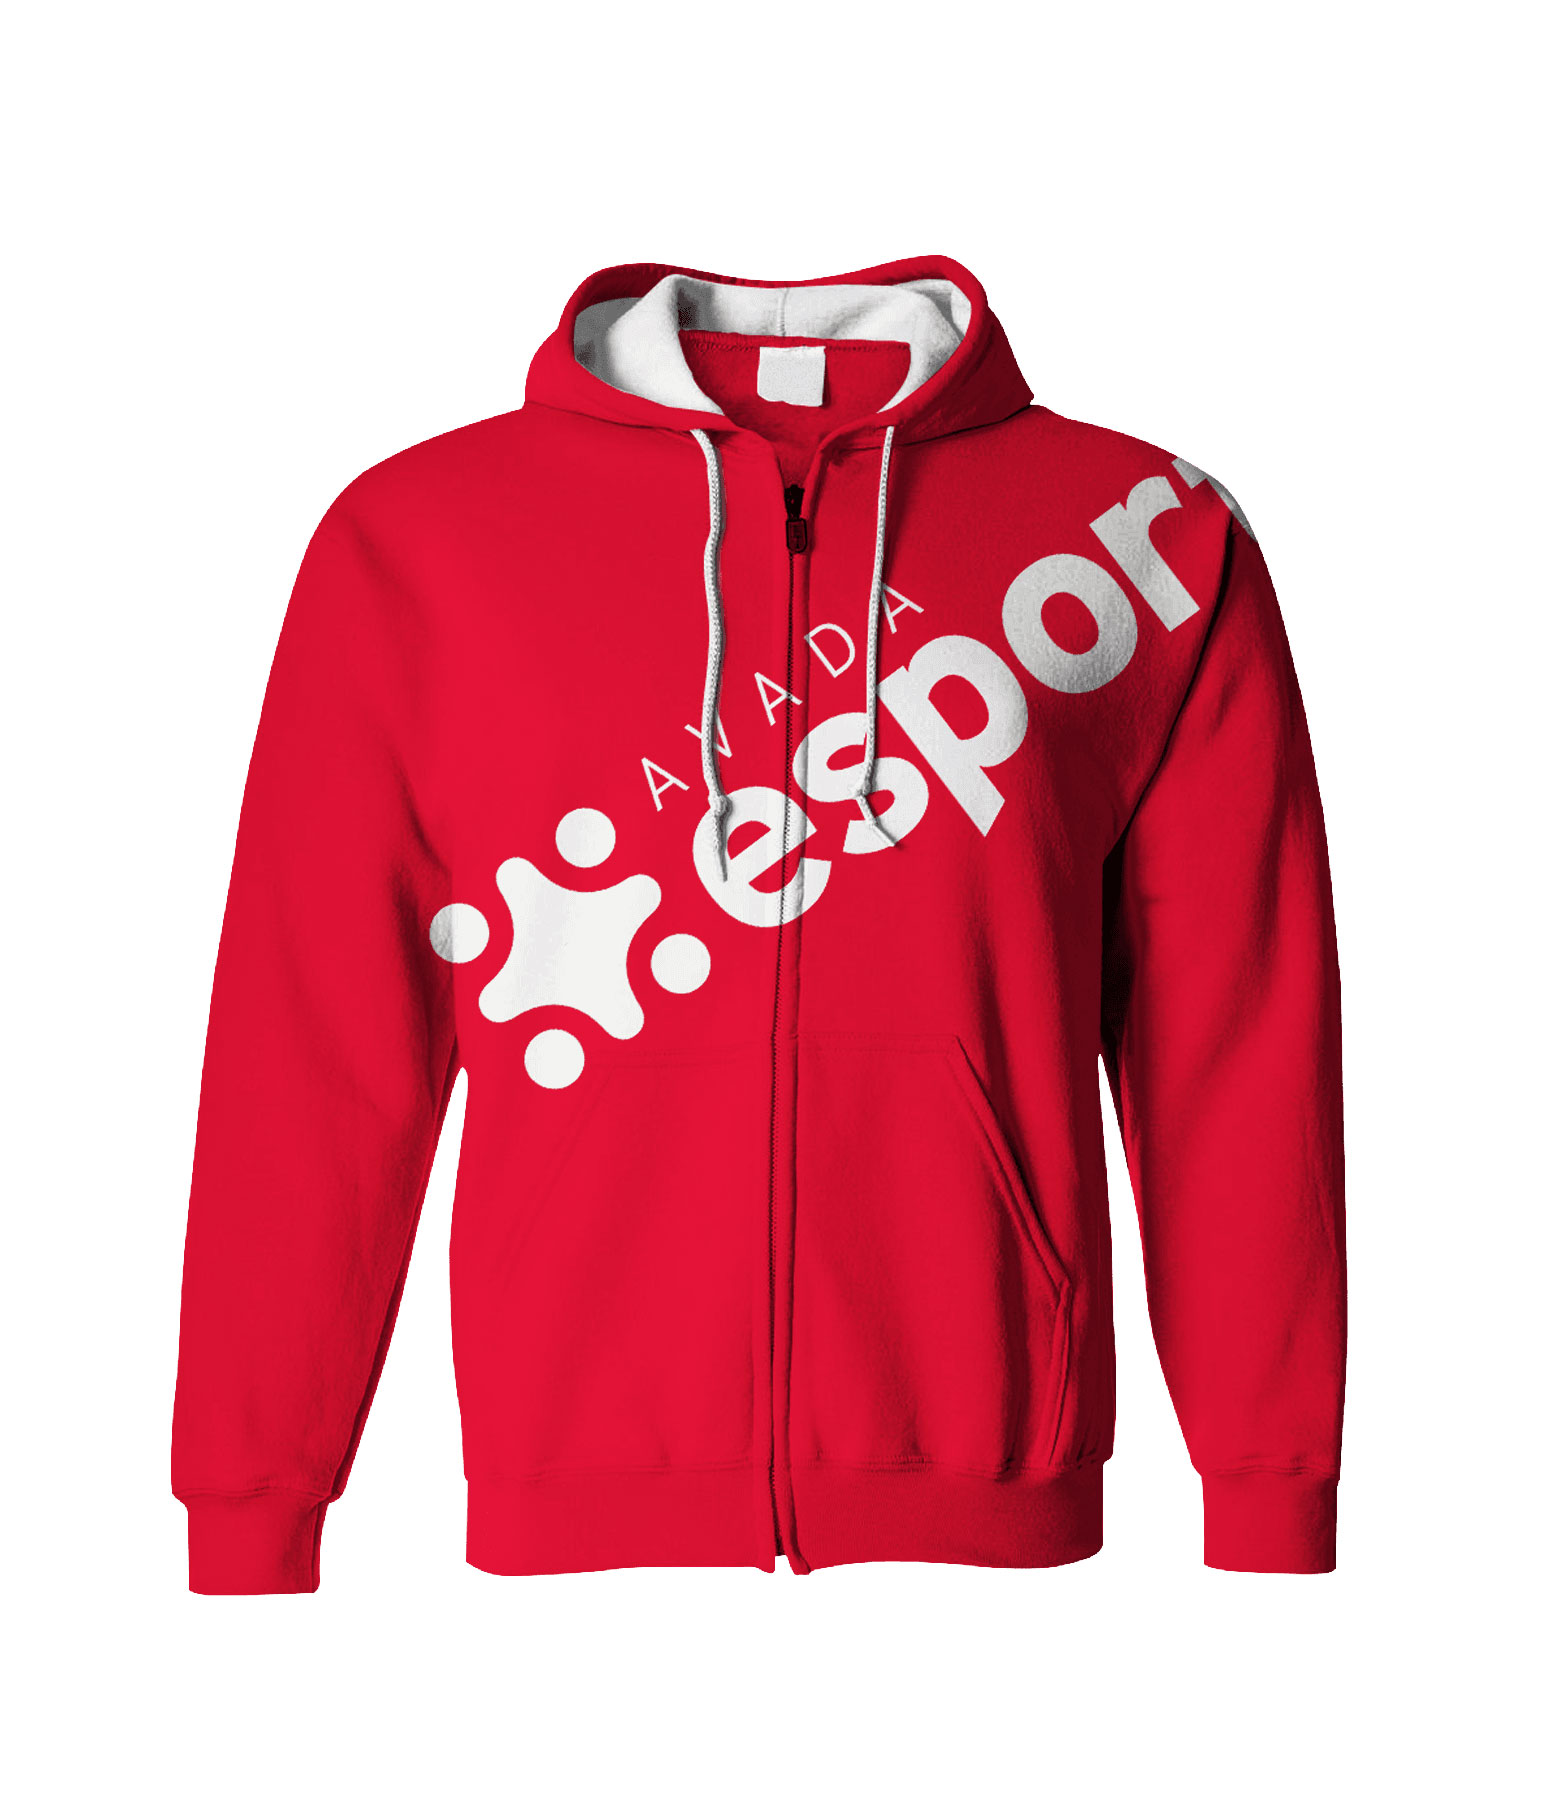 product-red-allover-hoody